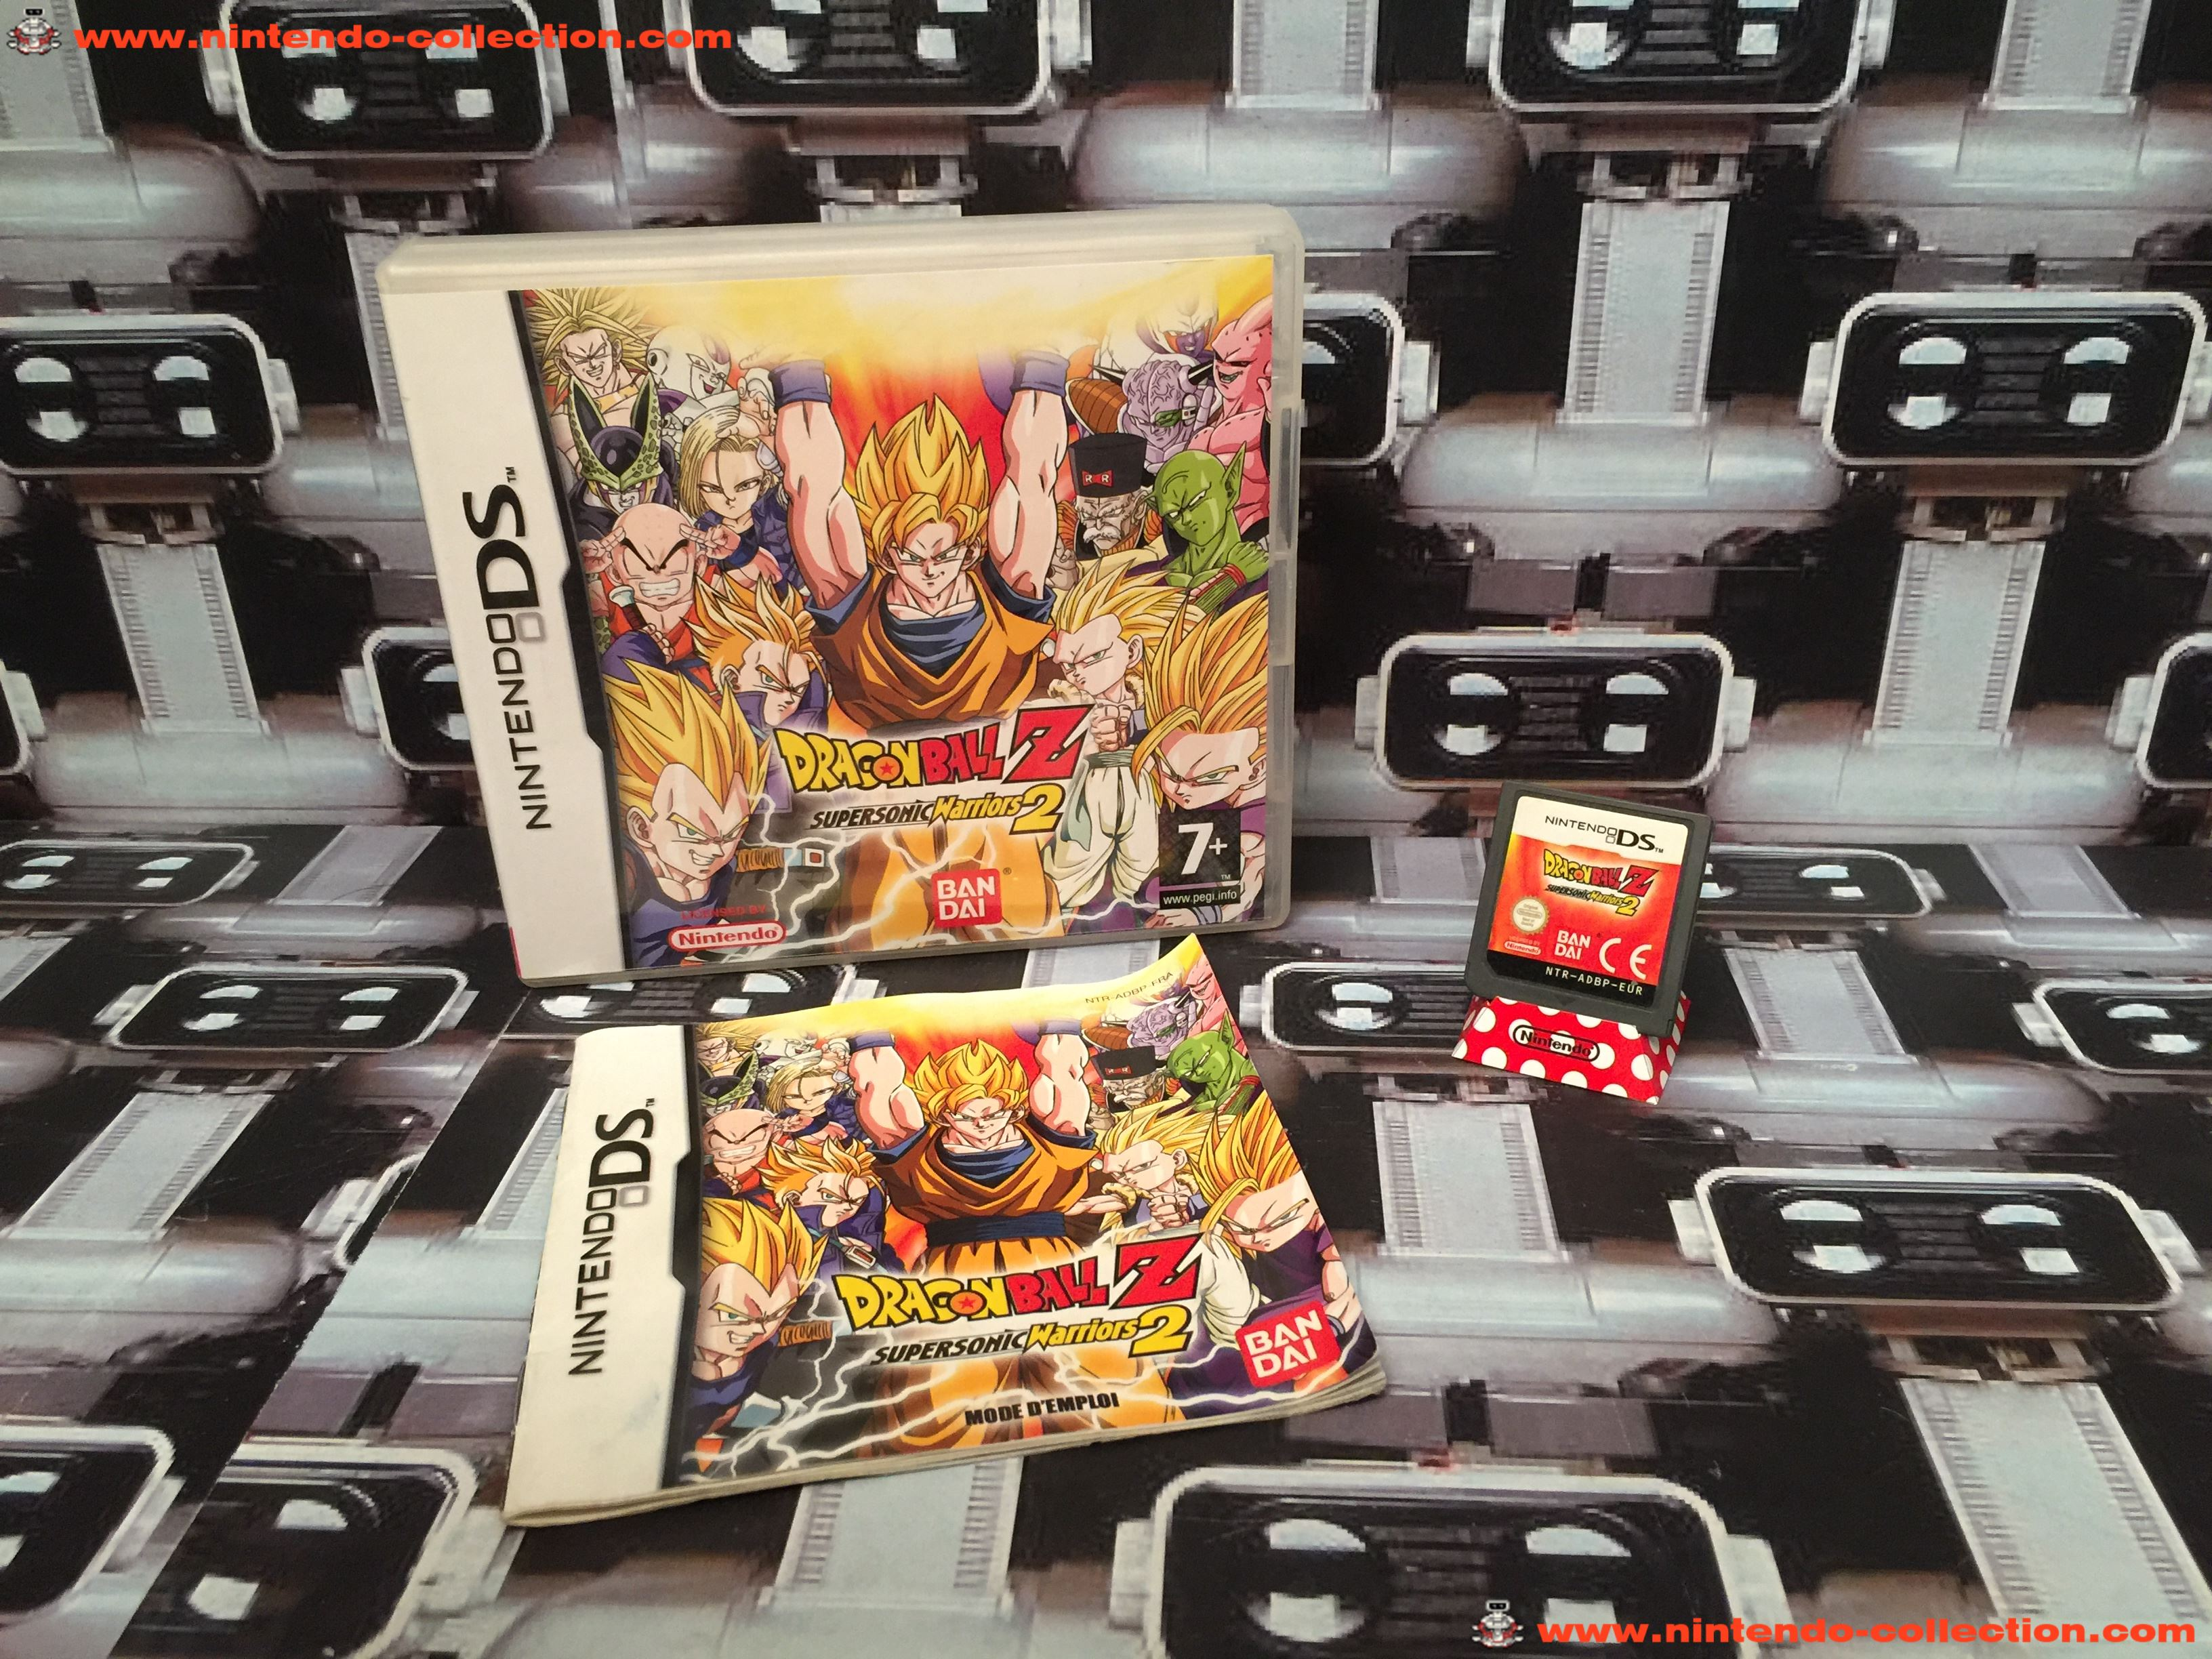 www.nintendo-collection.com - Nintendo DS Jeux Game Dragon Ball Z Supersonic Warriors 2 Euro